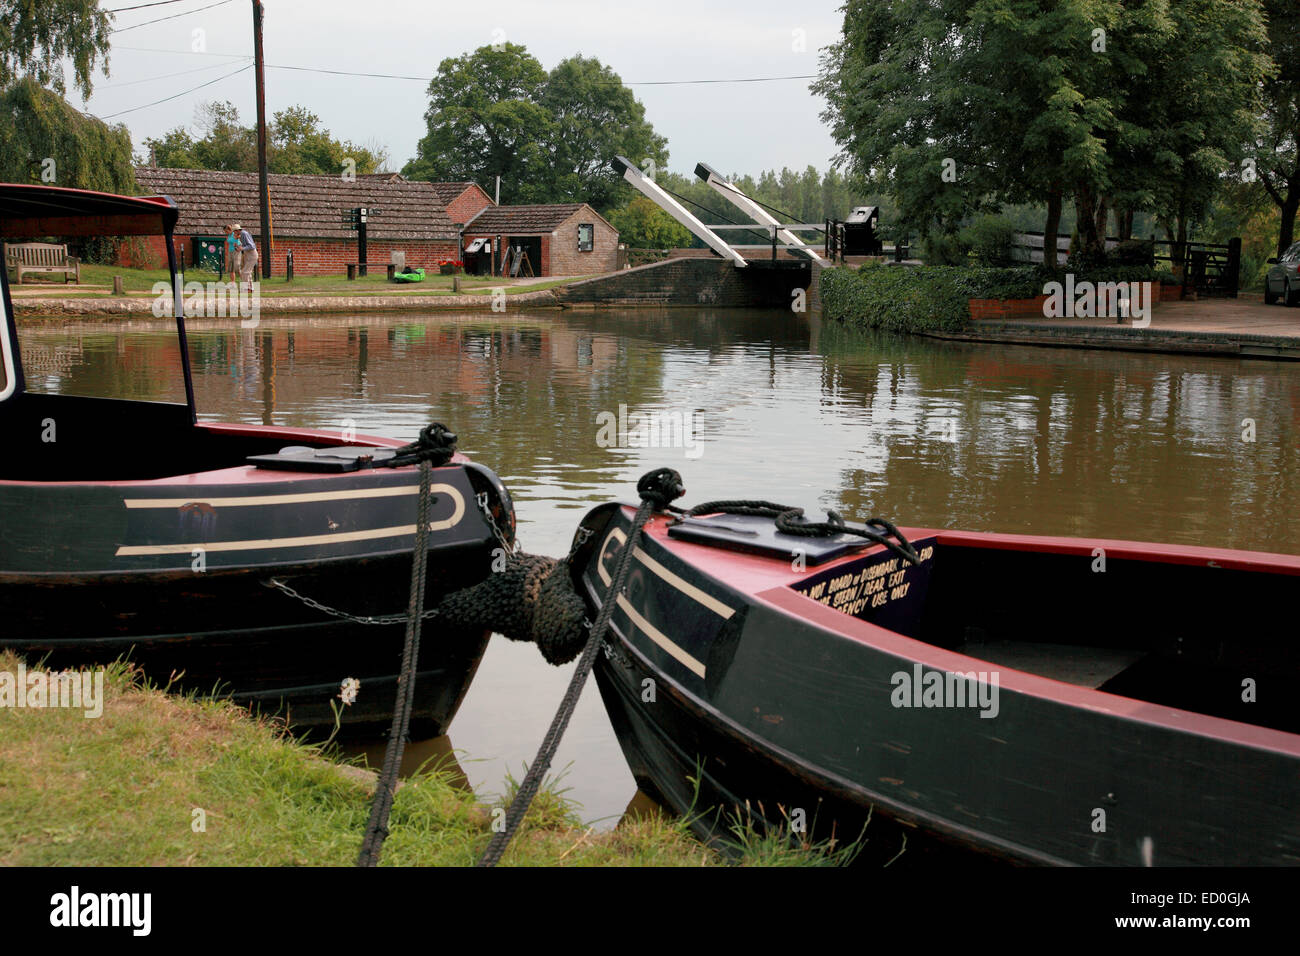 Electrically operated Aubreys Lift Bridge at Thrupp on the Oxford Canal - Stock Image